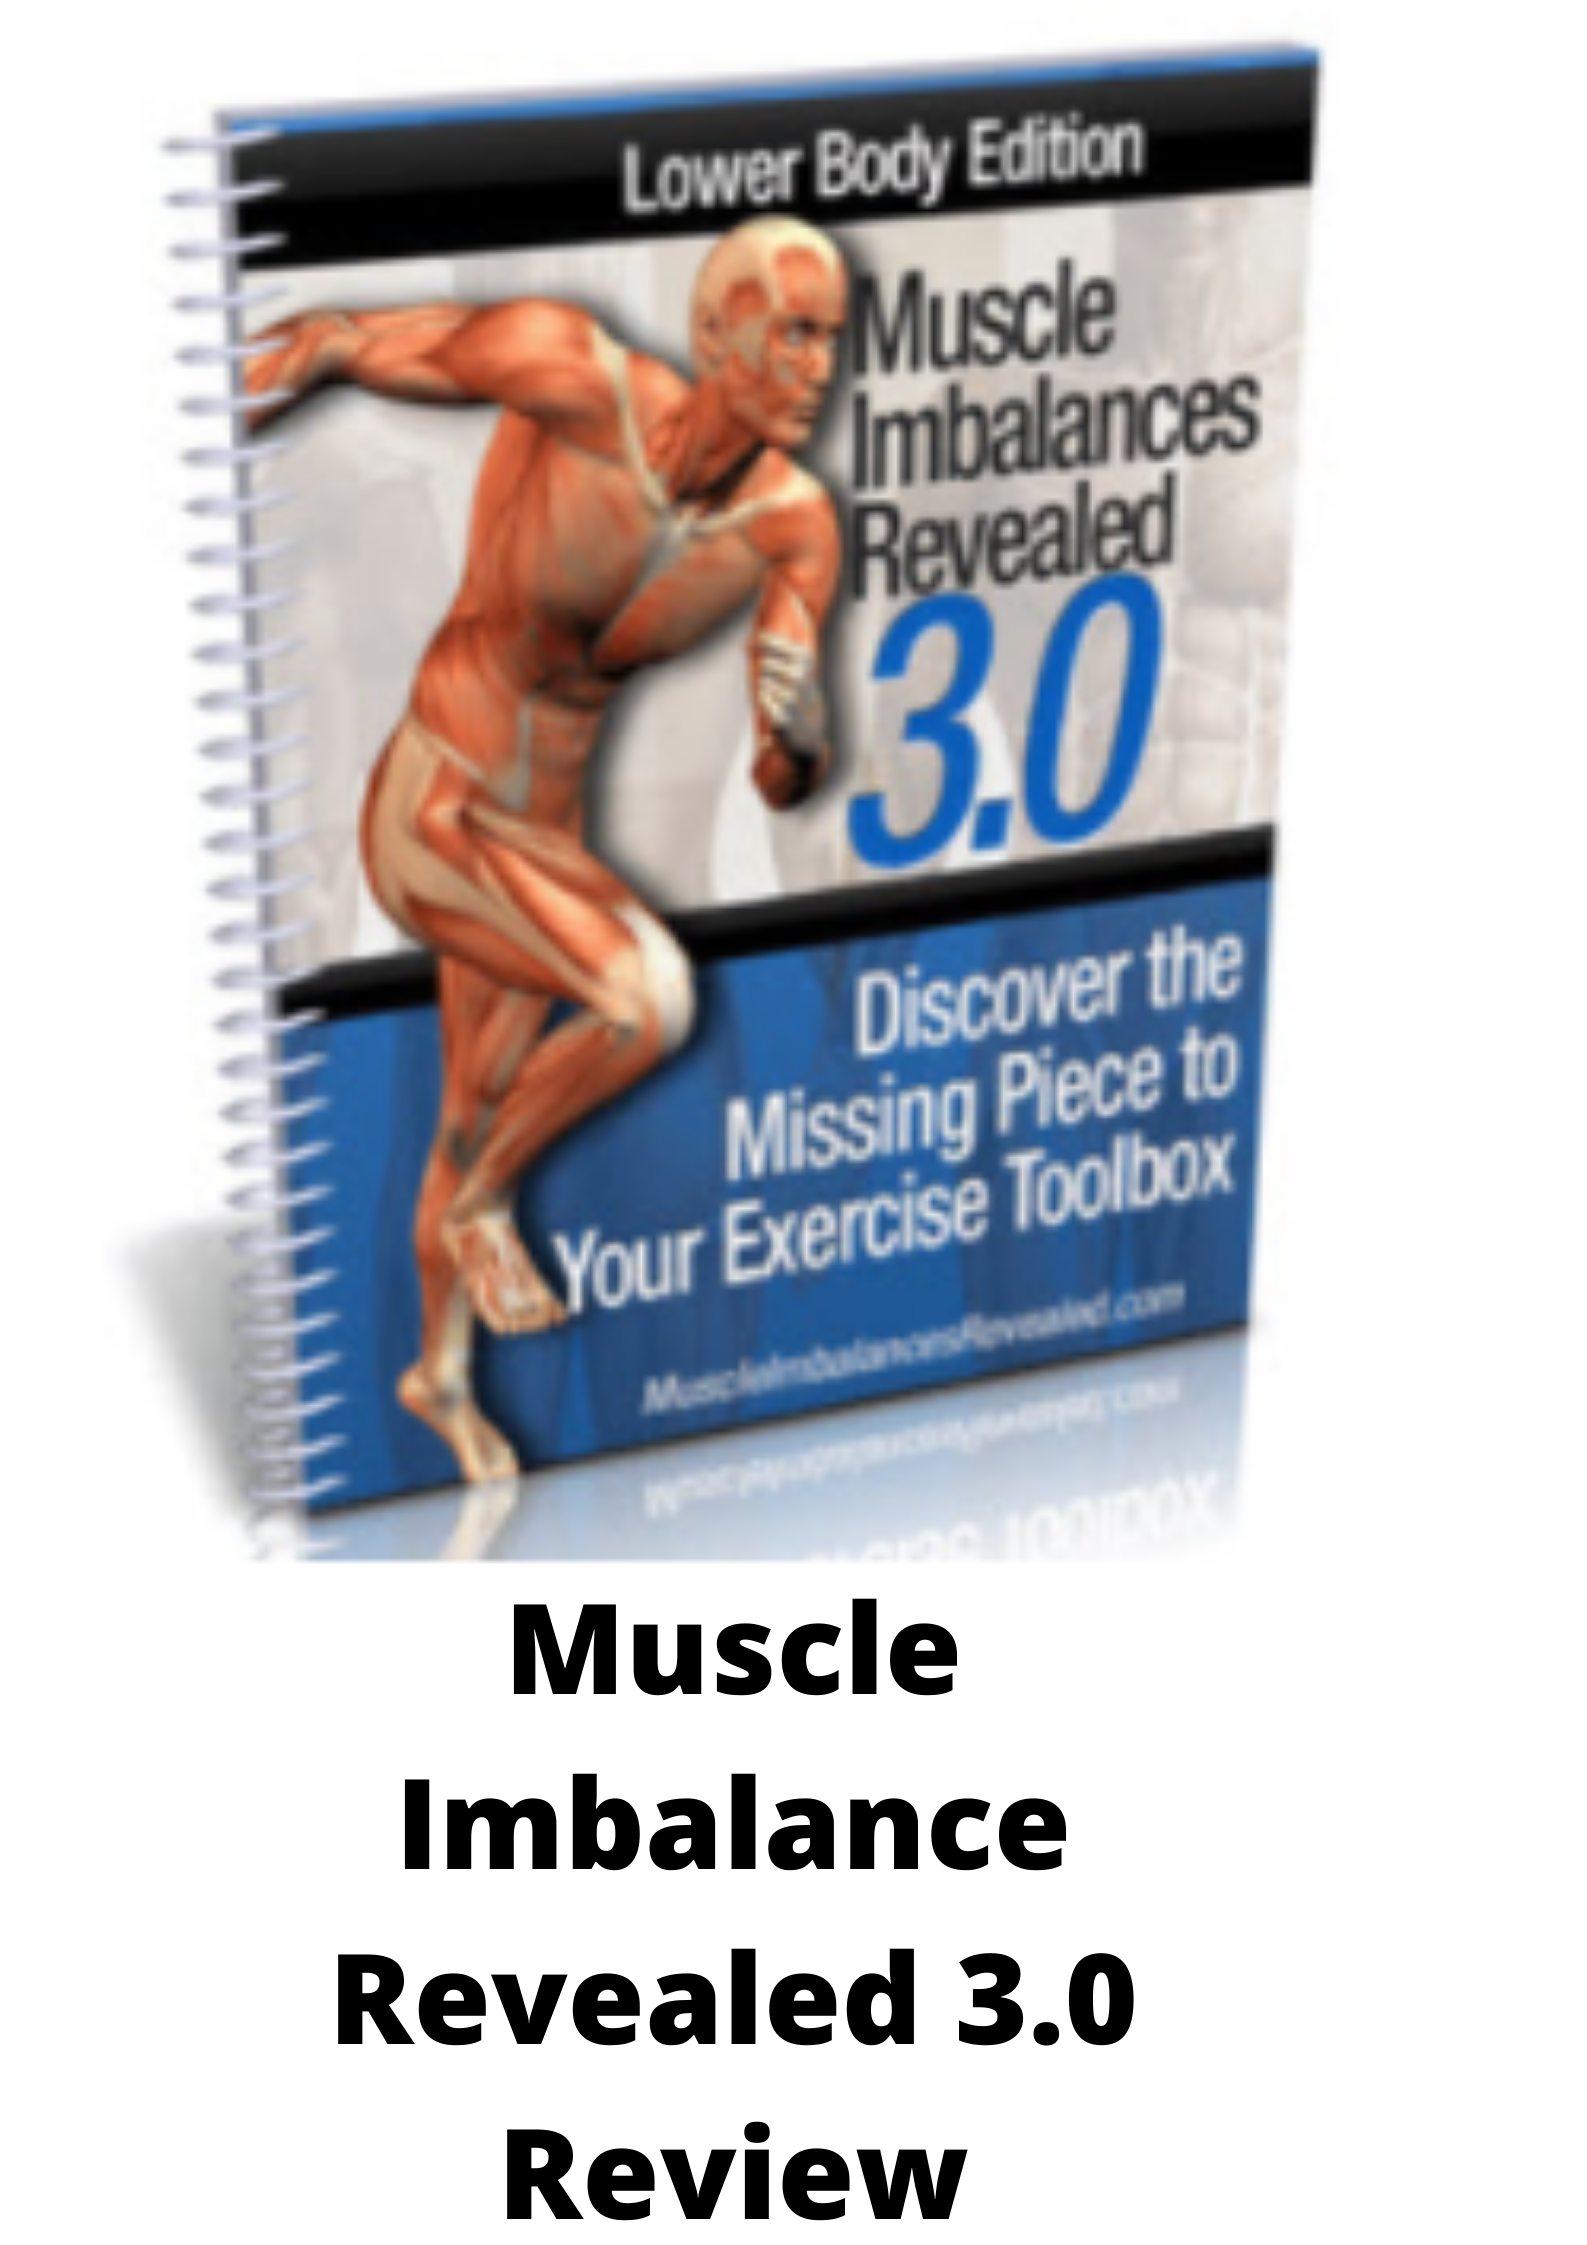 Muscle Imbalances Revealed Review